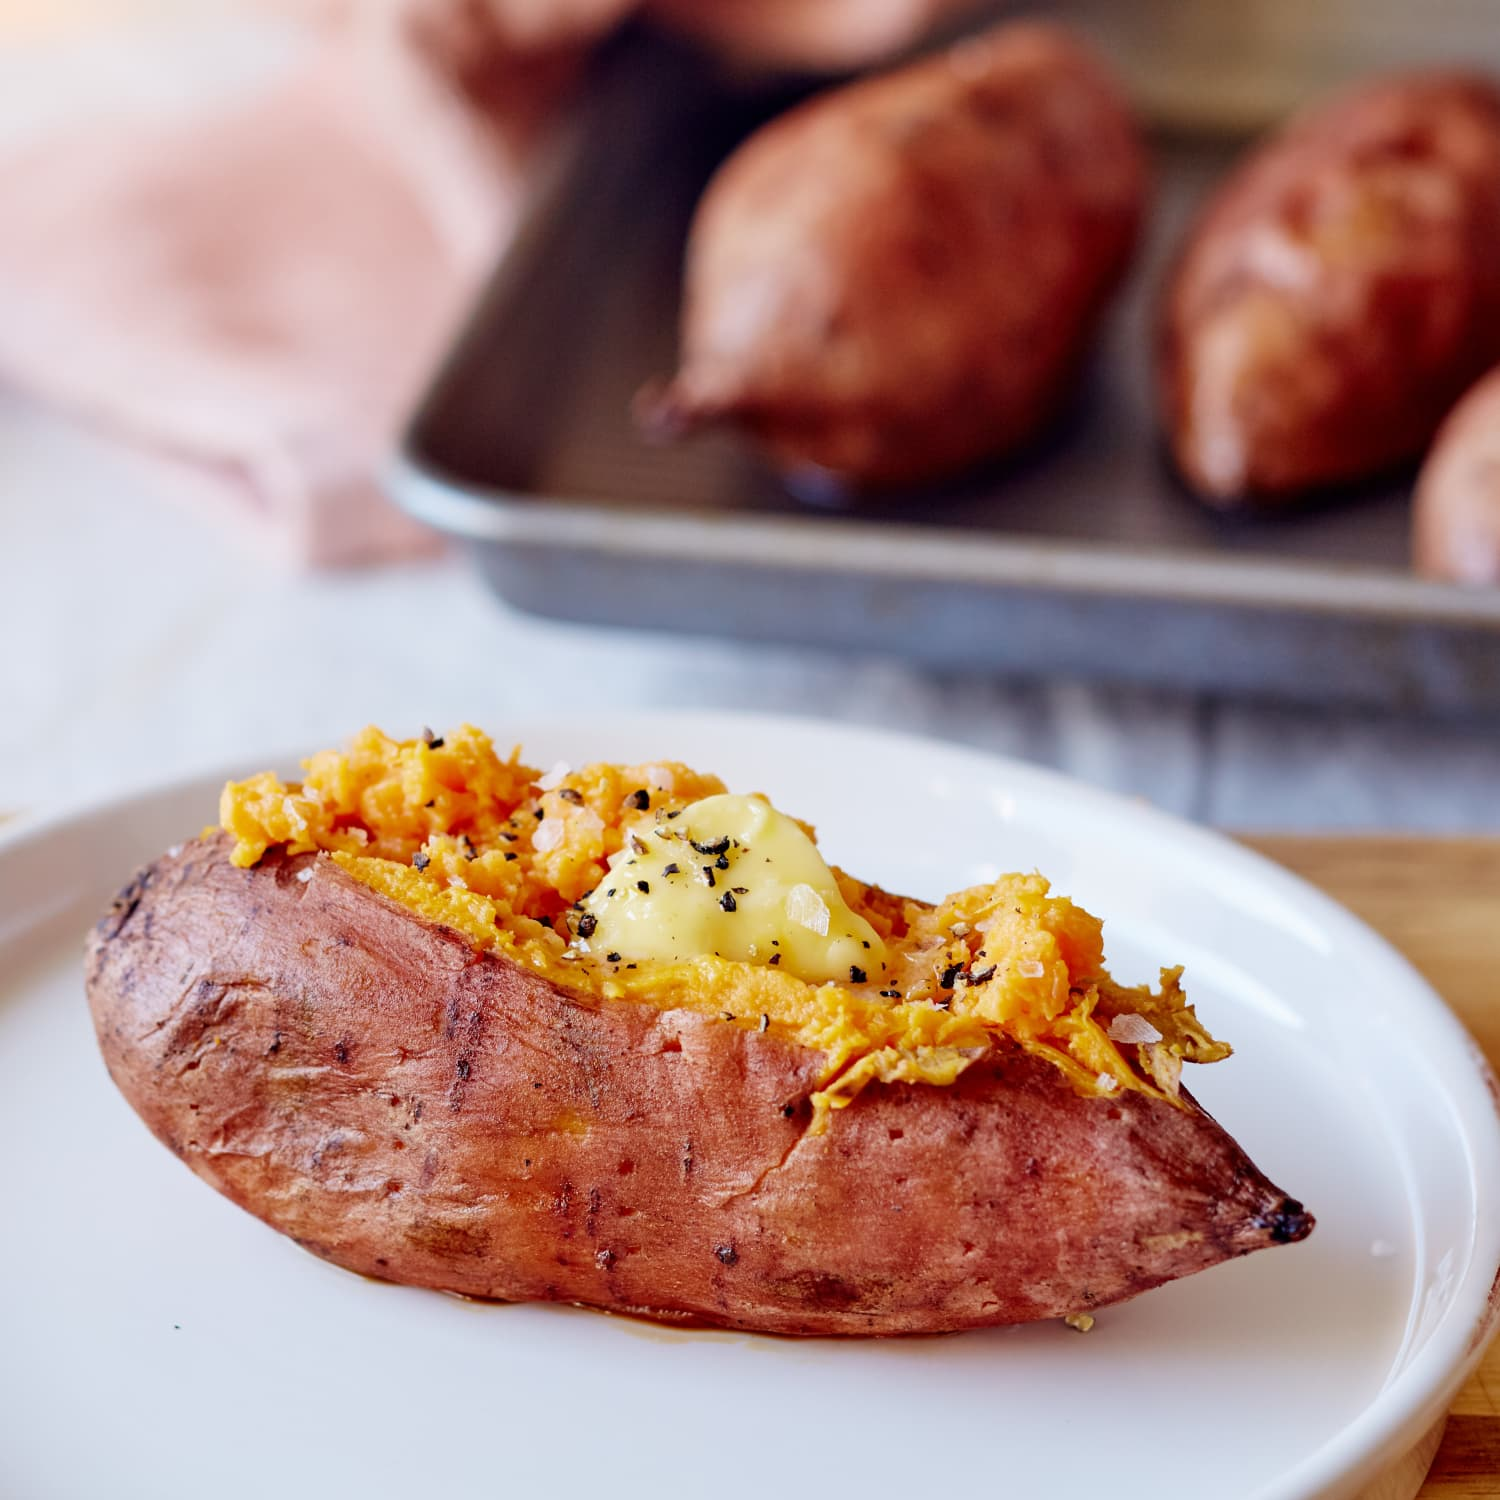 How To Bake a Sweet Potato in the Oven